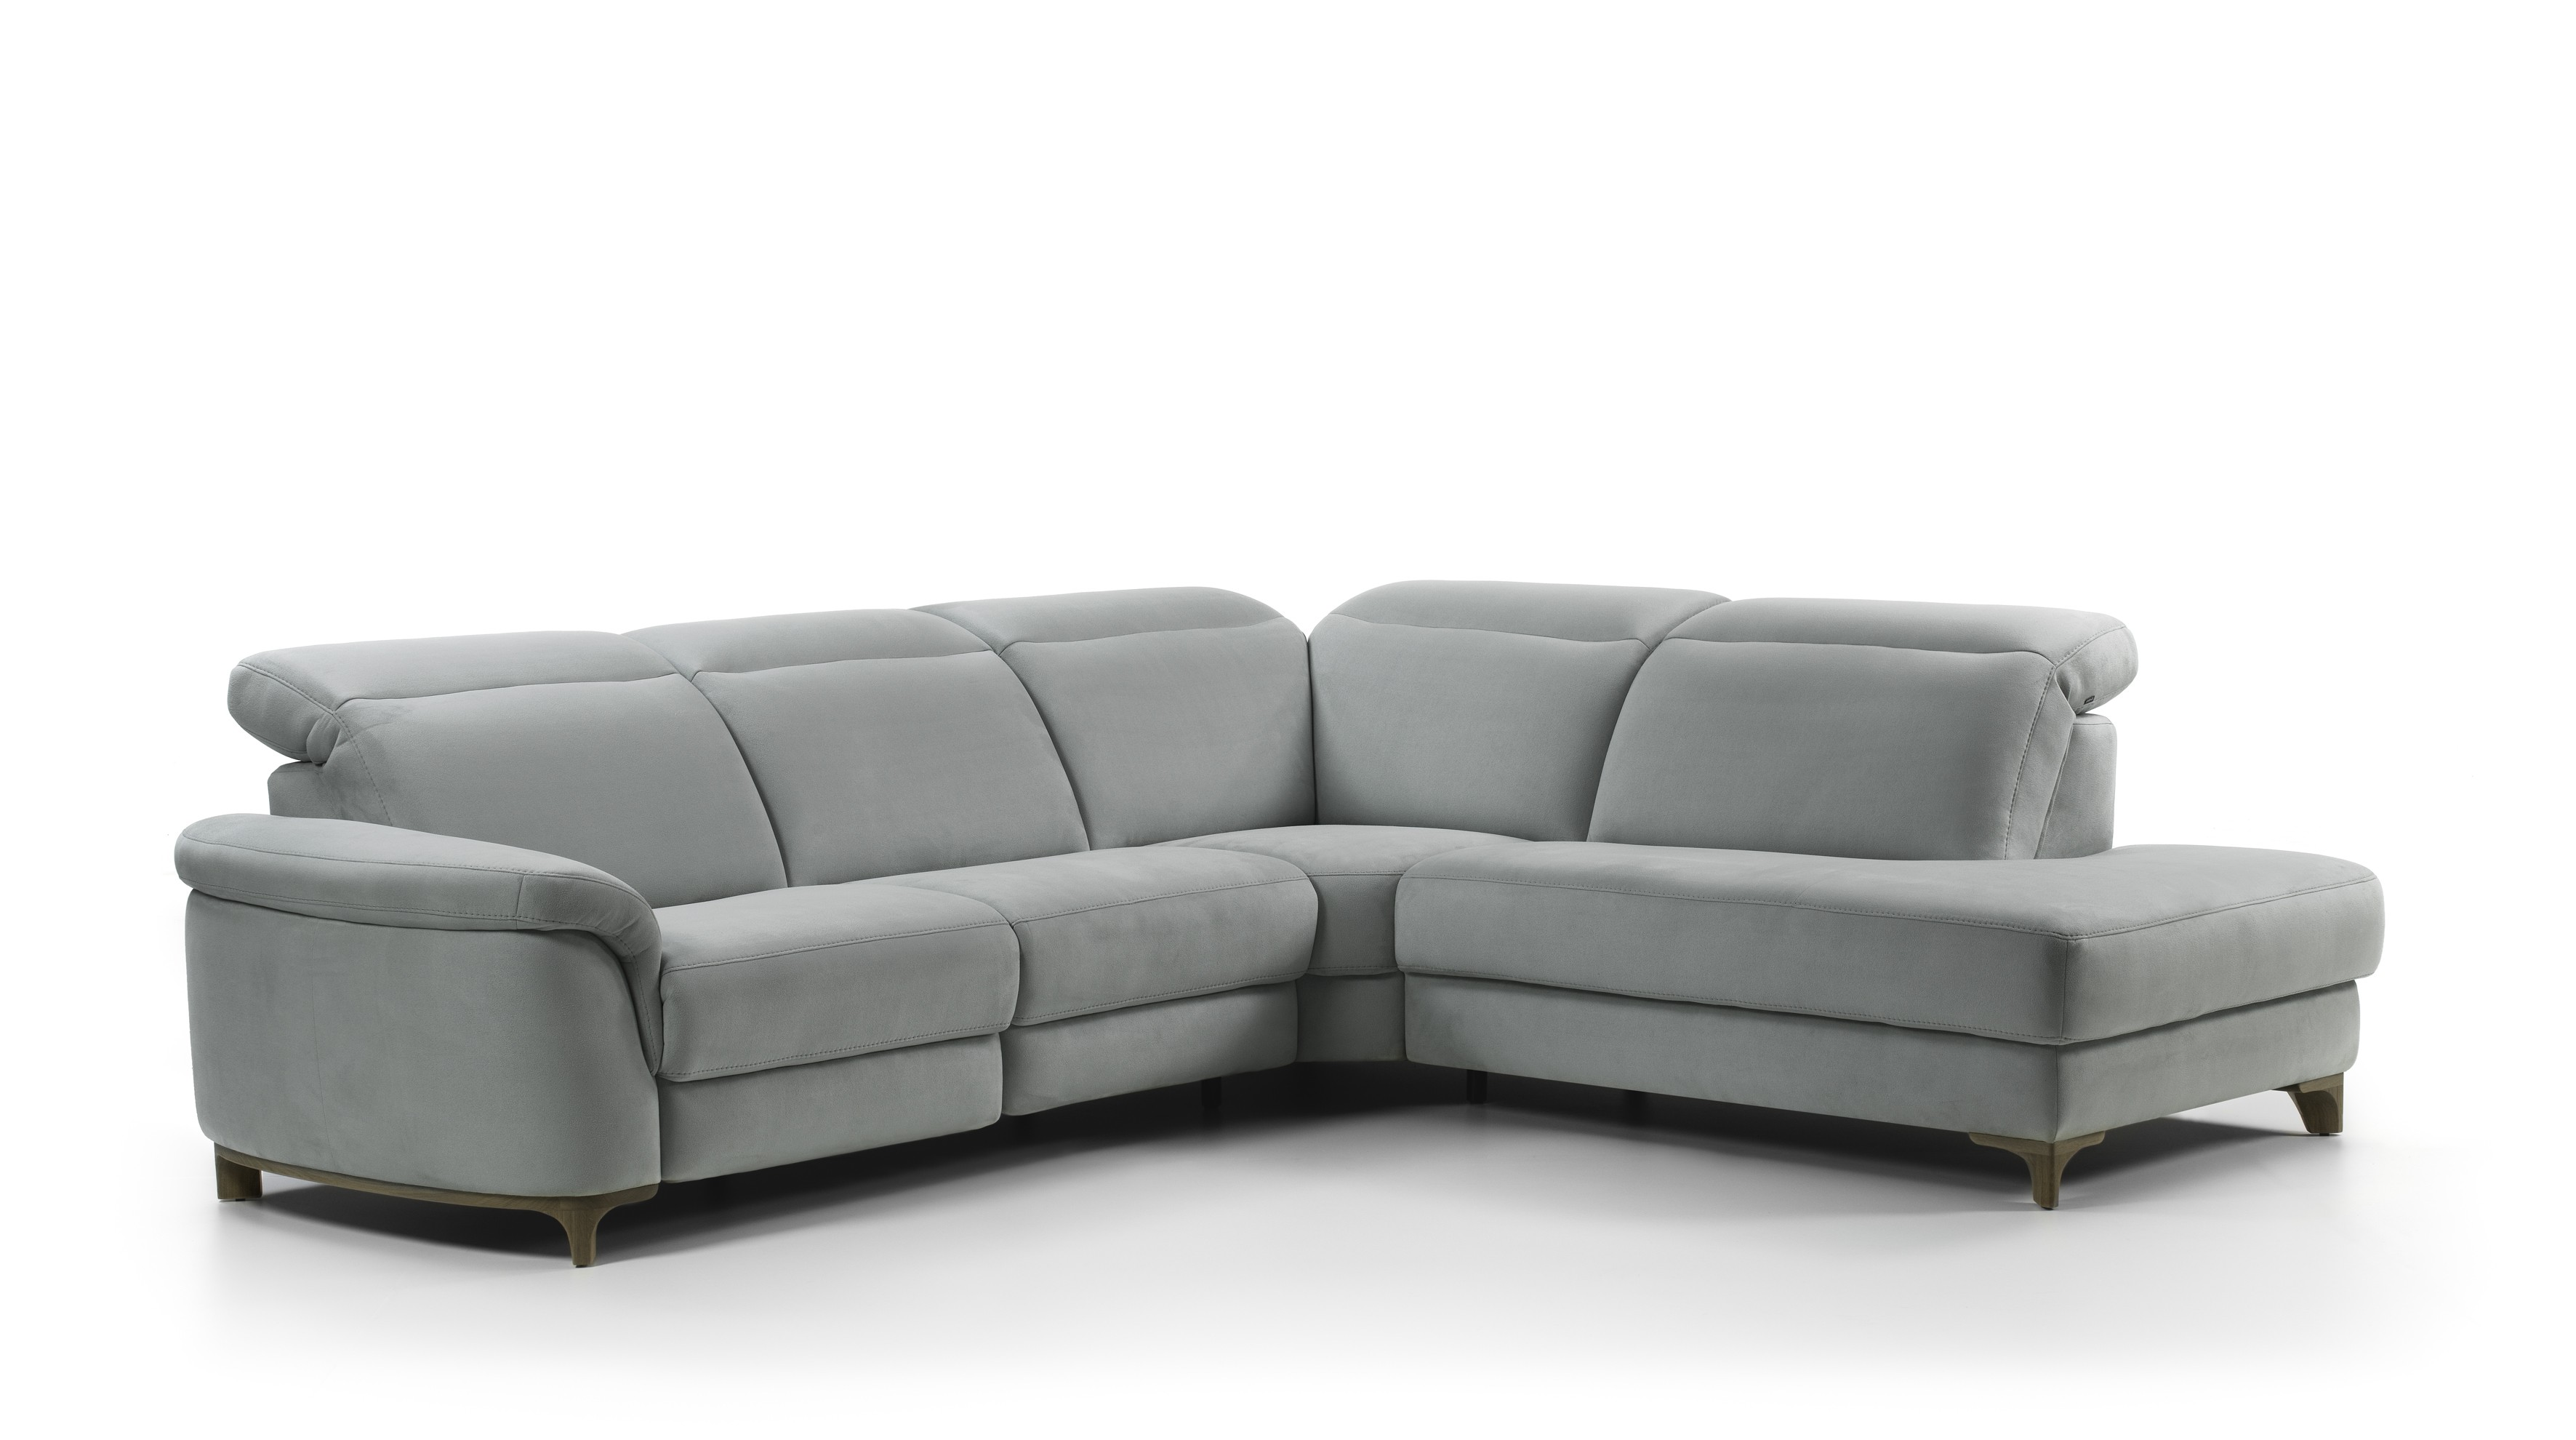 Amazing Bellona Leather Sectional | Rom | Made In Belgium